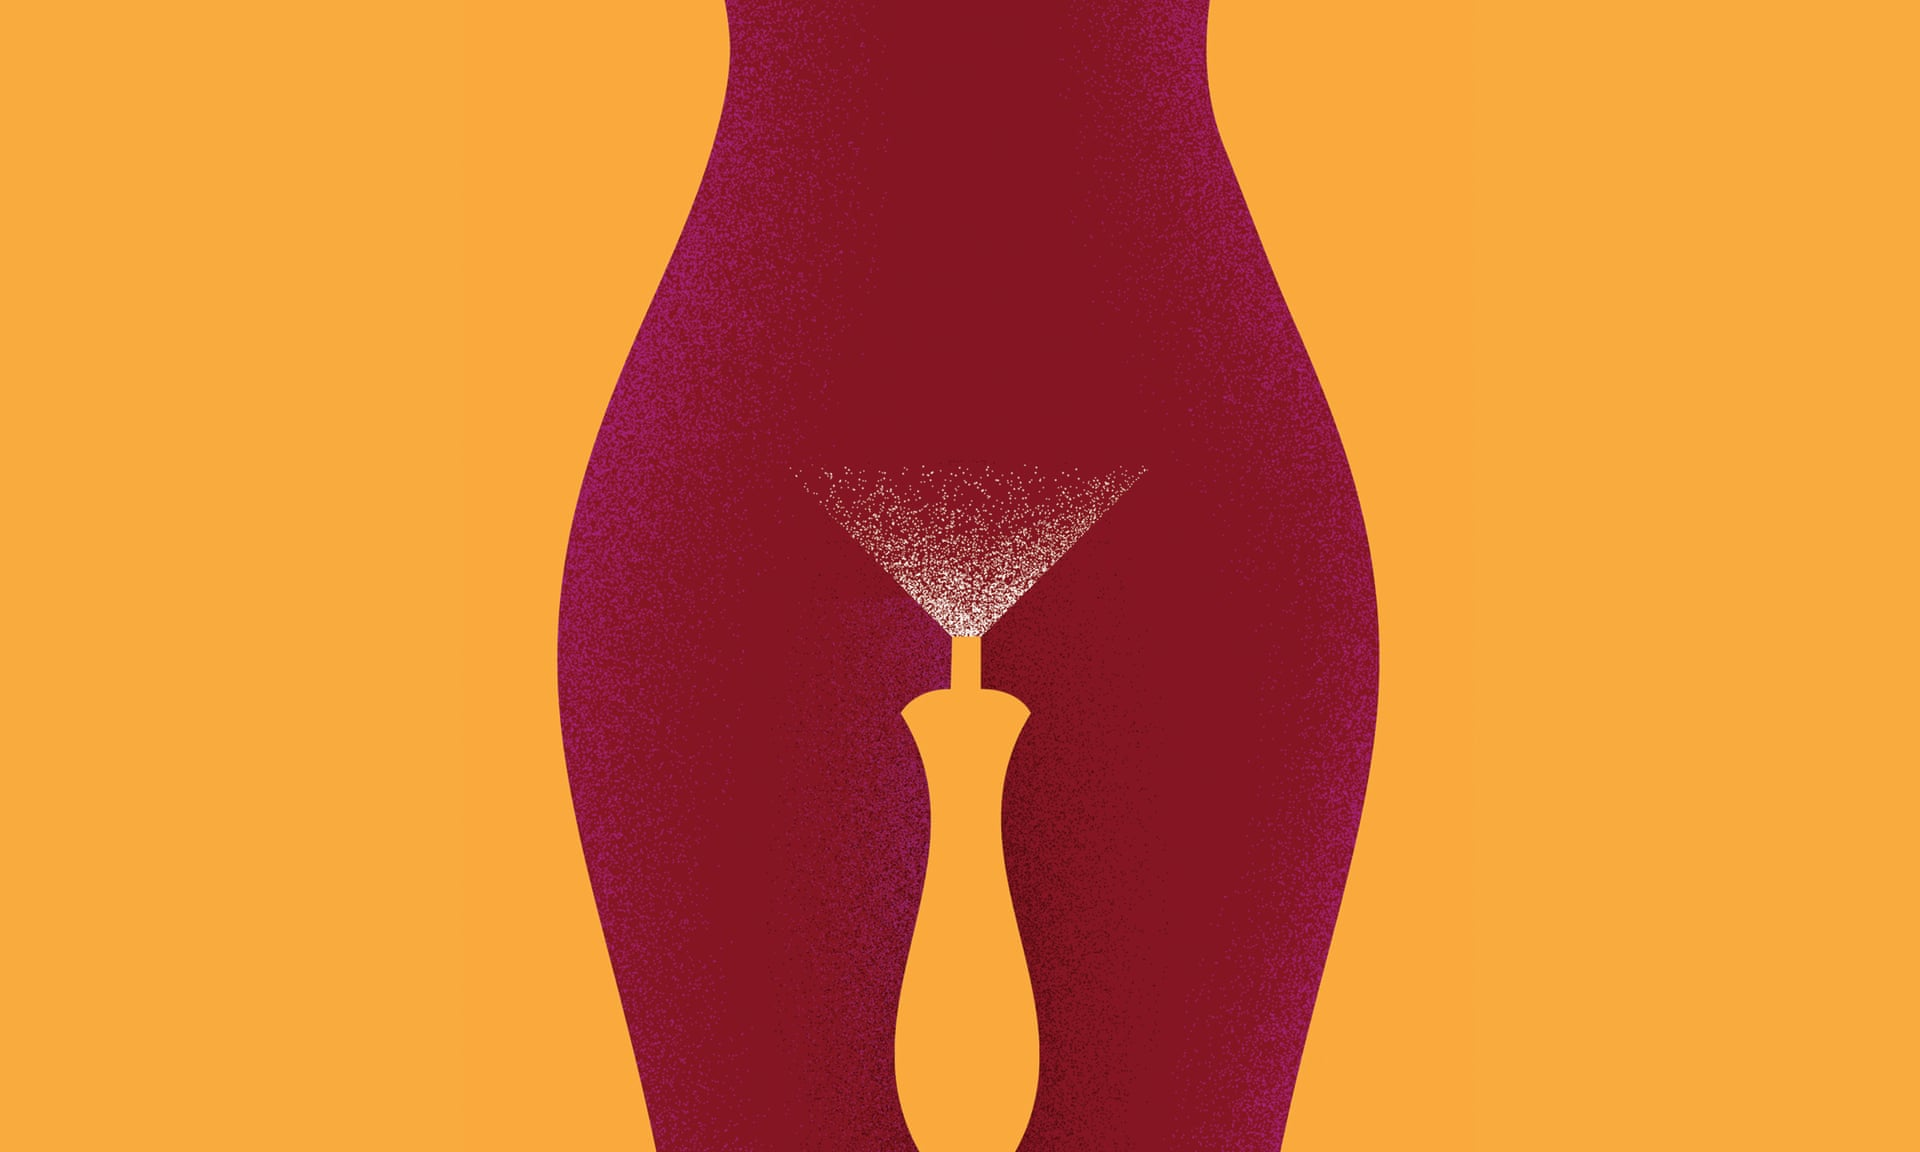 A Brief History Of The Vaginal Hygiene Industry